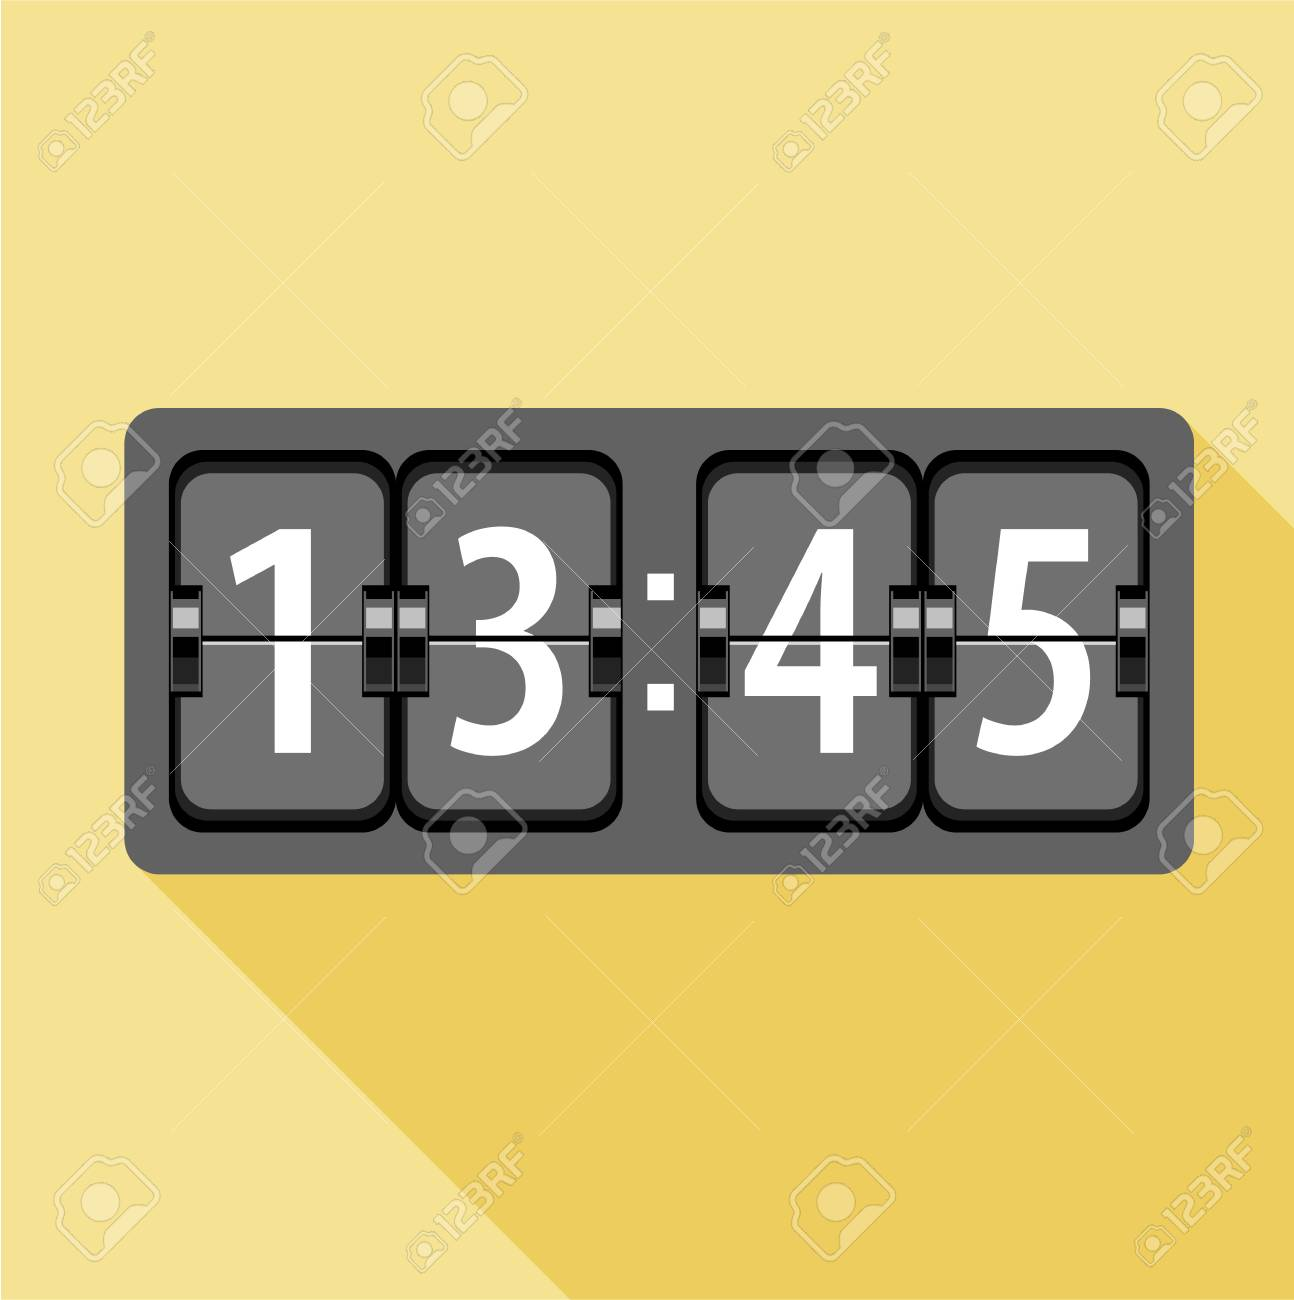 Flip Clock Analog Flip Clock Icon Flat Illustration Of Analog Flip Clock